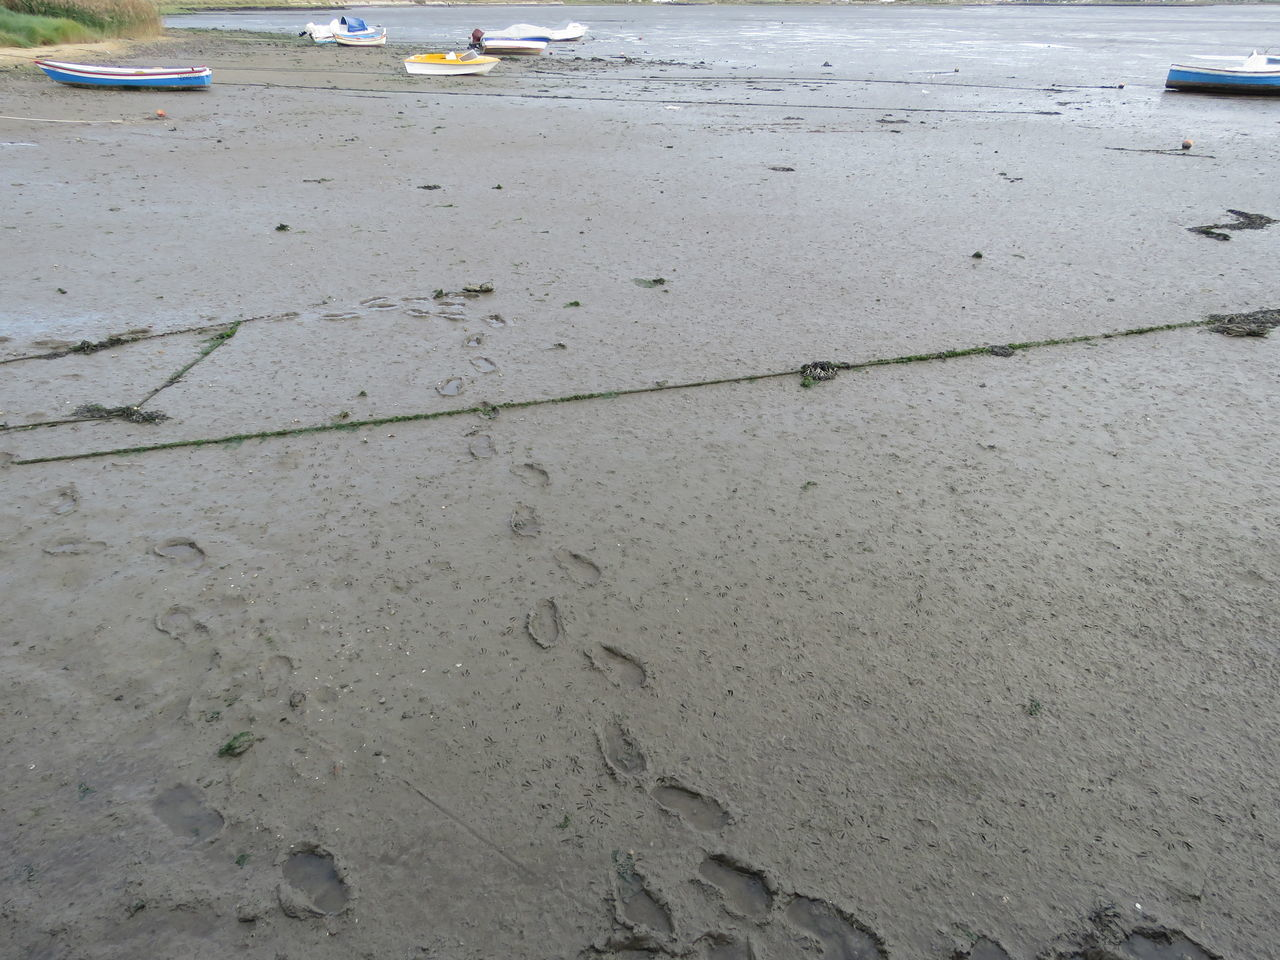 wet, sand, street, day, no people, outdoors, beach, water, puddle, nature, close-up